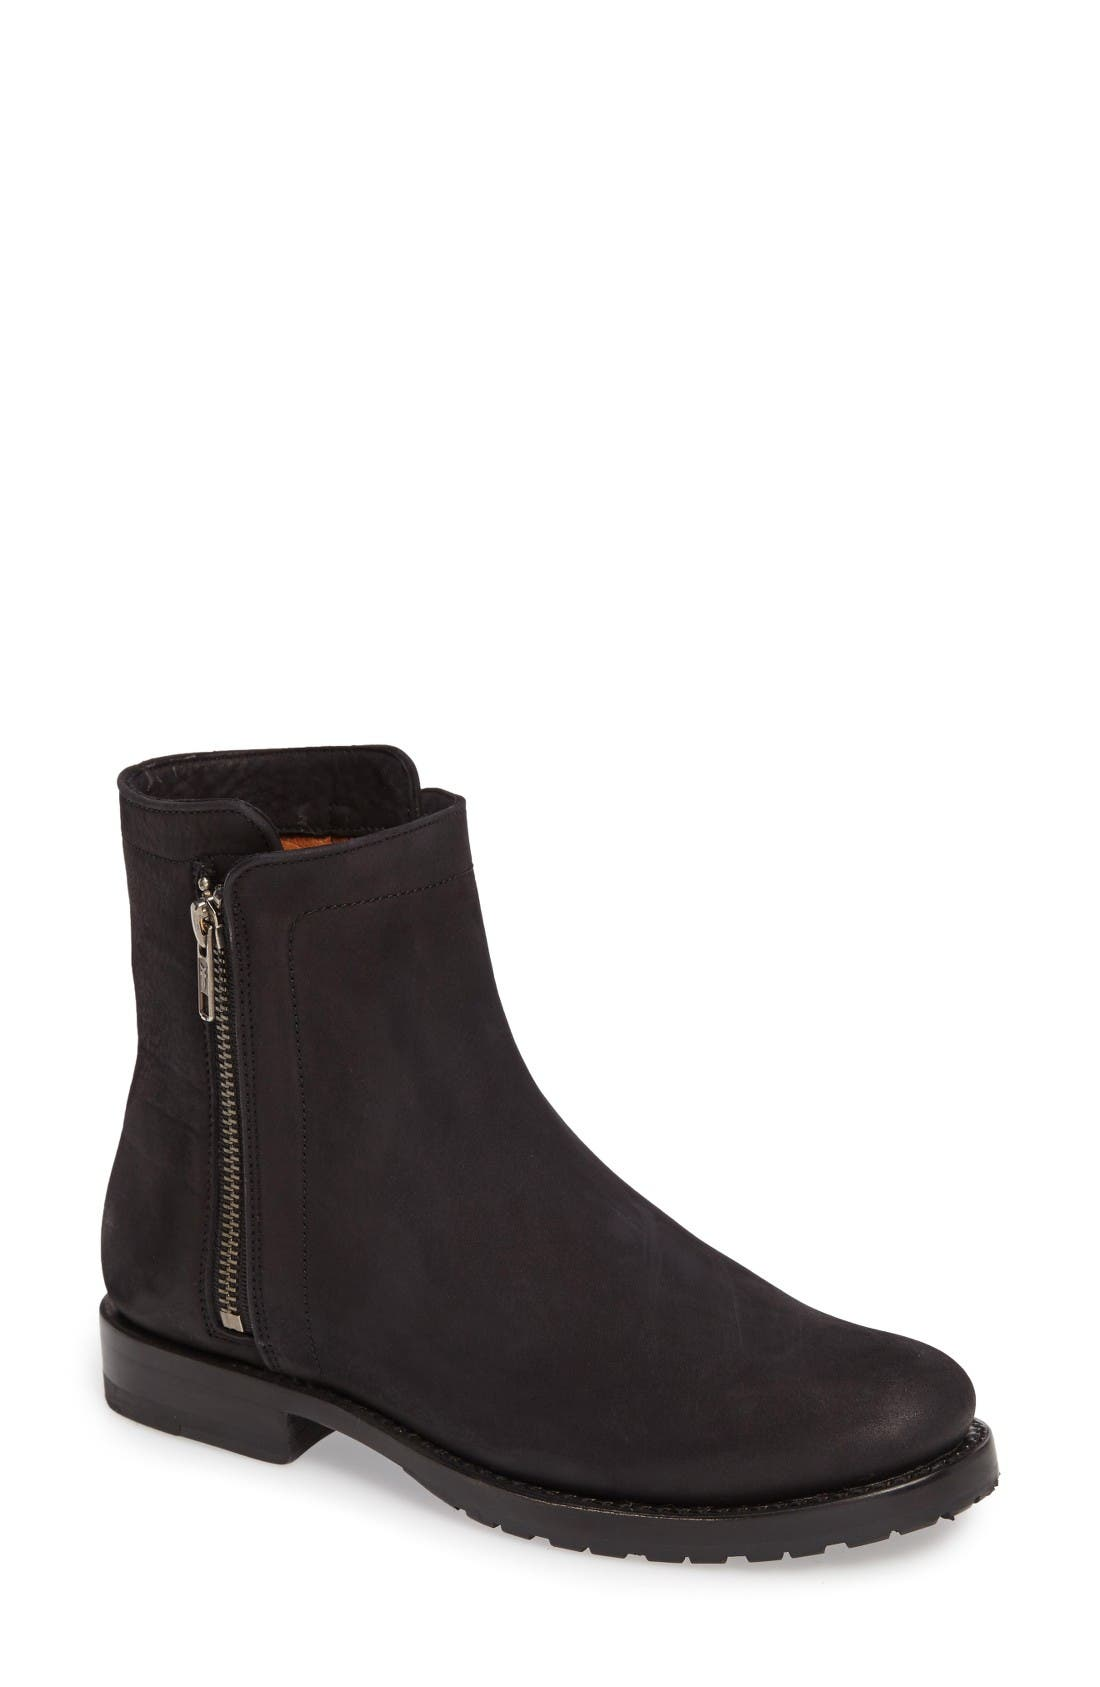 Natalie Bootie,                         Main,                         color, Black